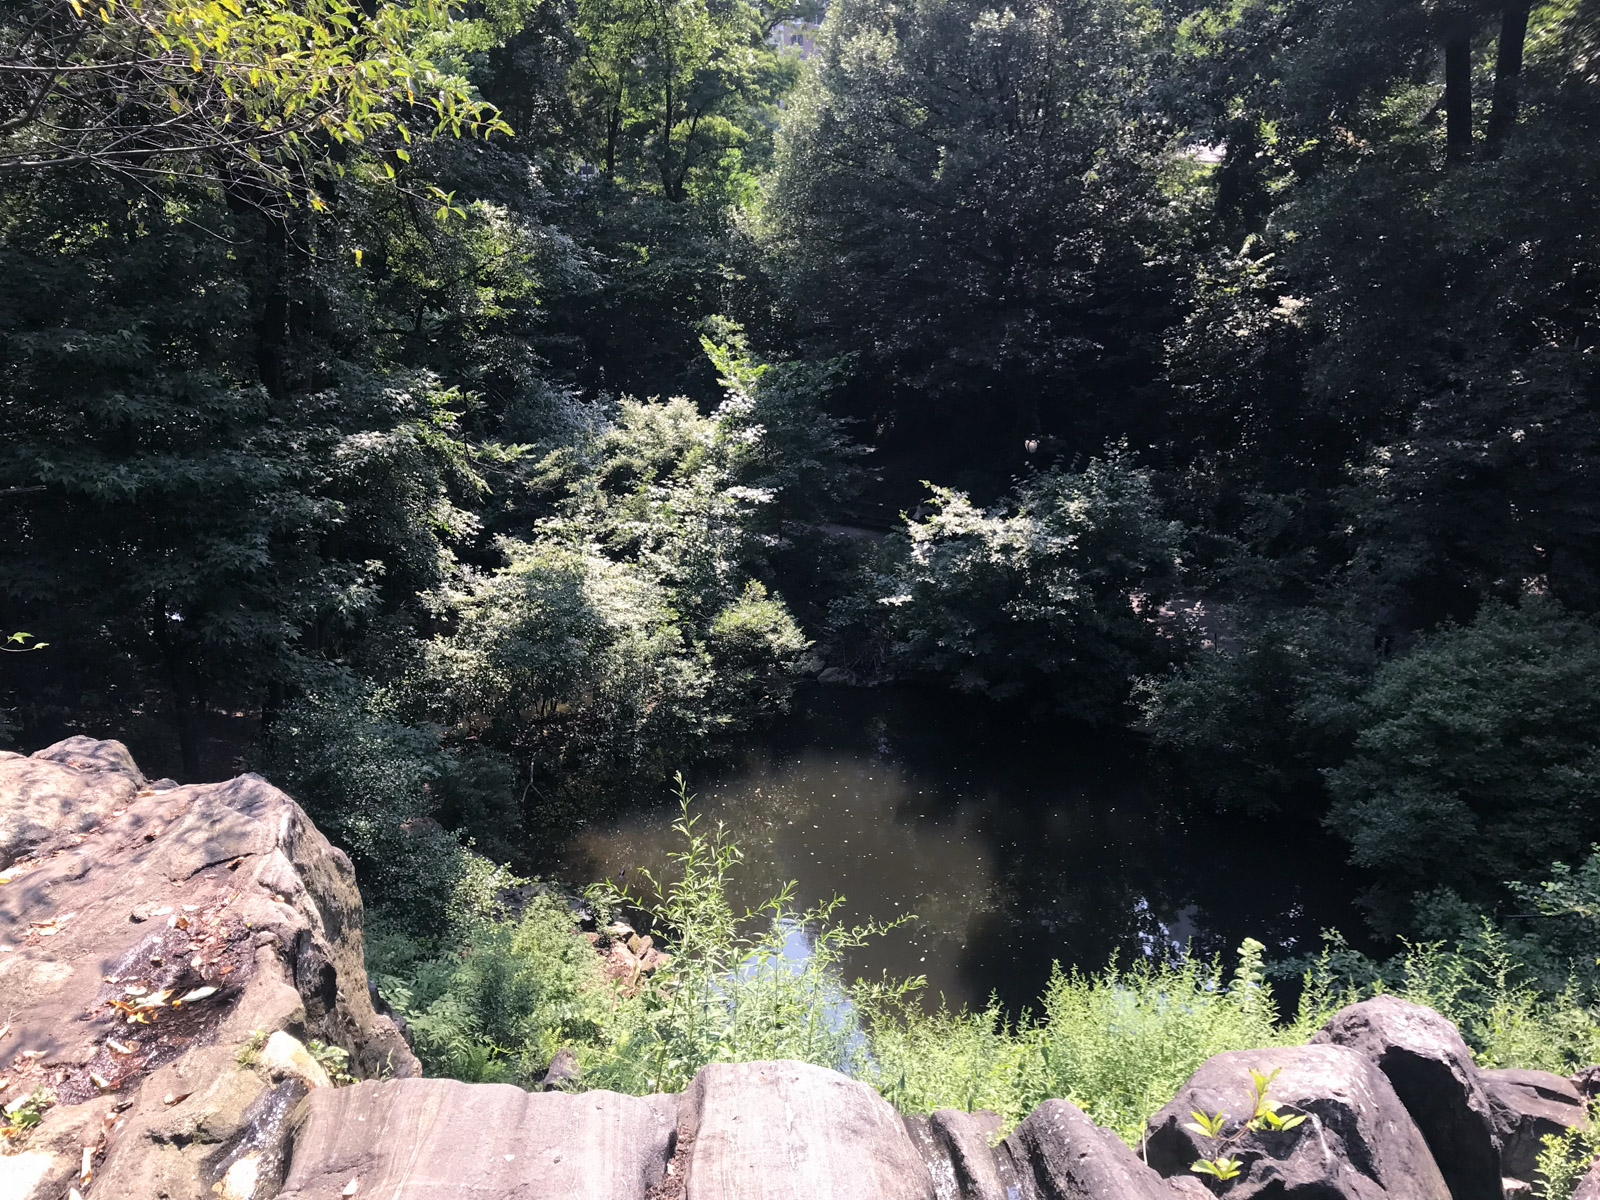 A pond as seen from the edge of a small cliff. Surrounding the water are many trees